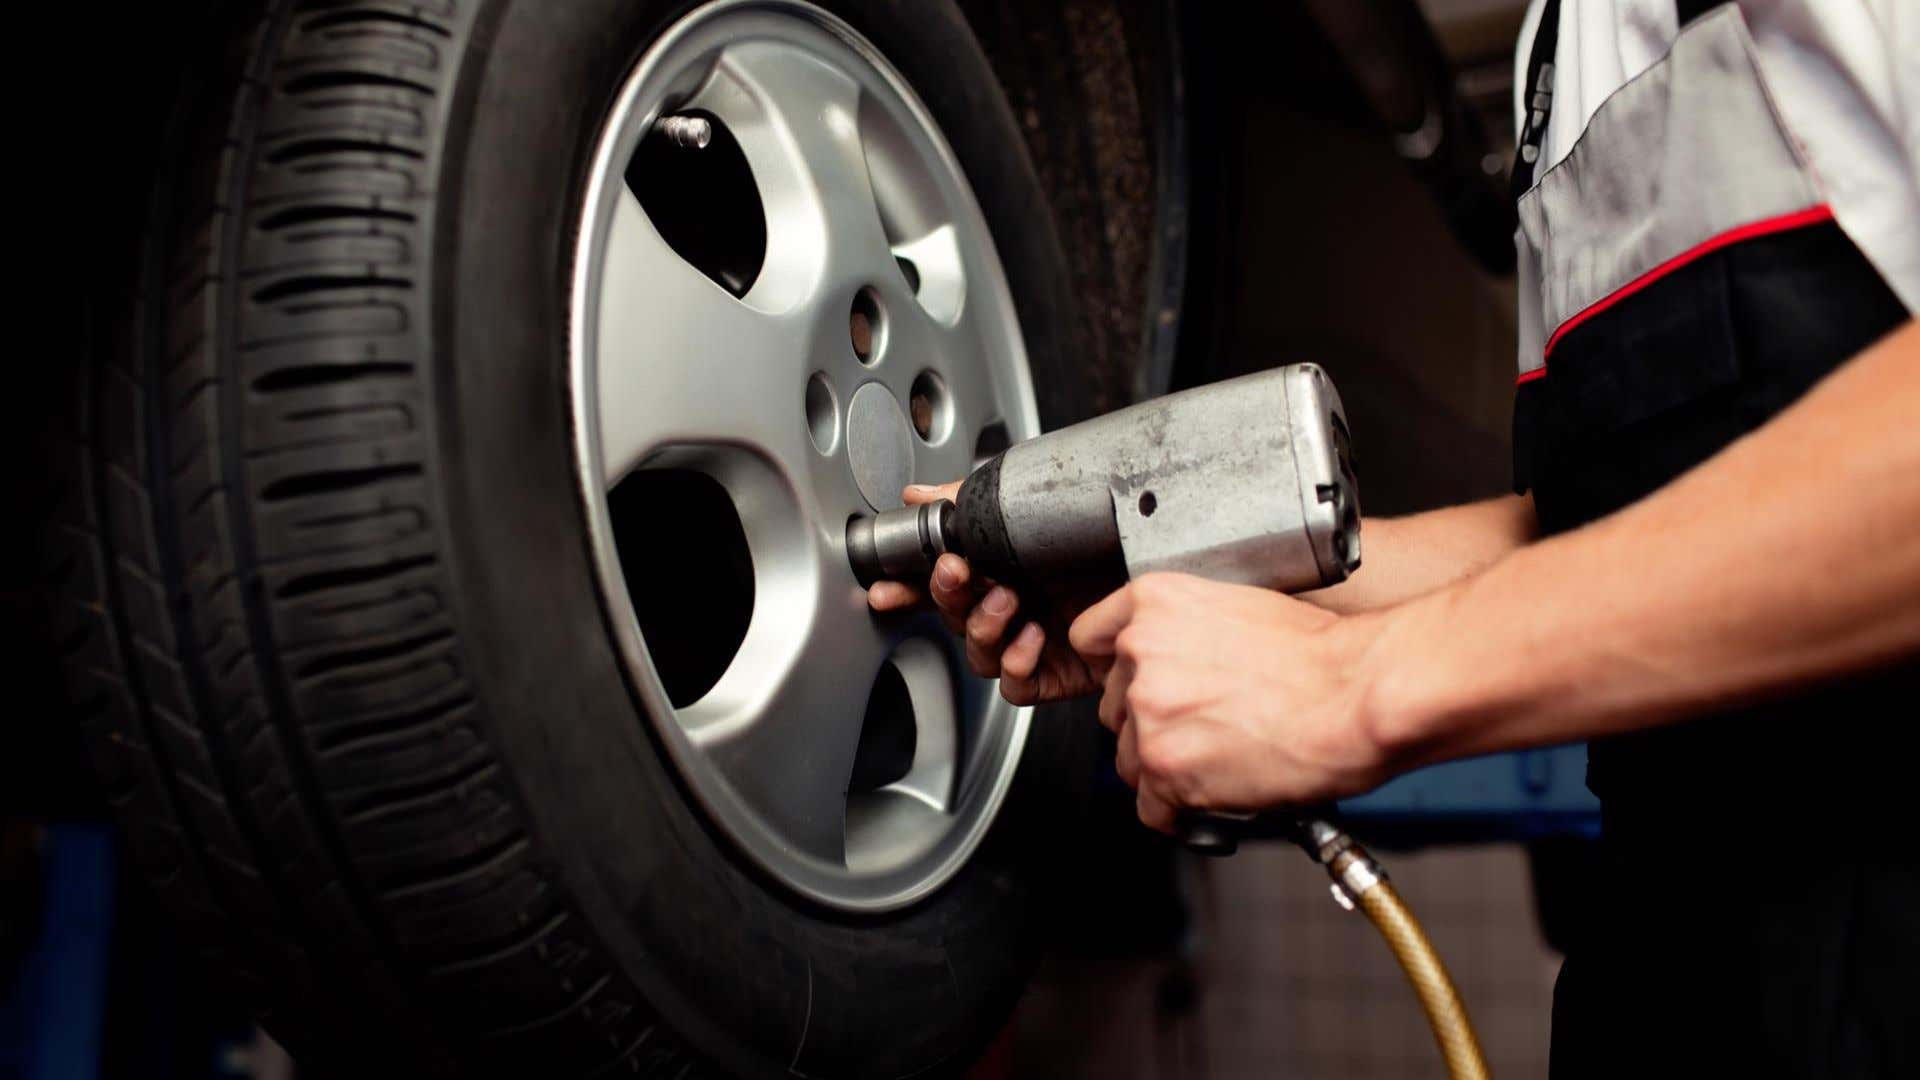 Let's make sure your tires are up to snuff.